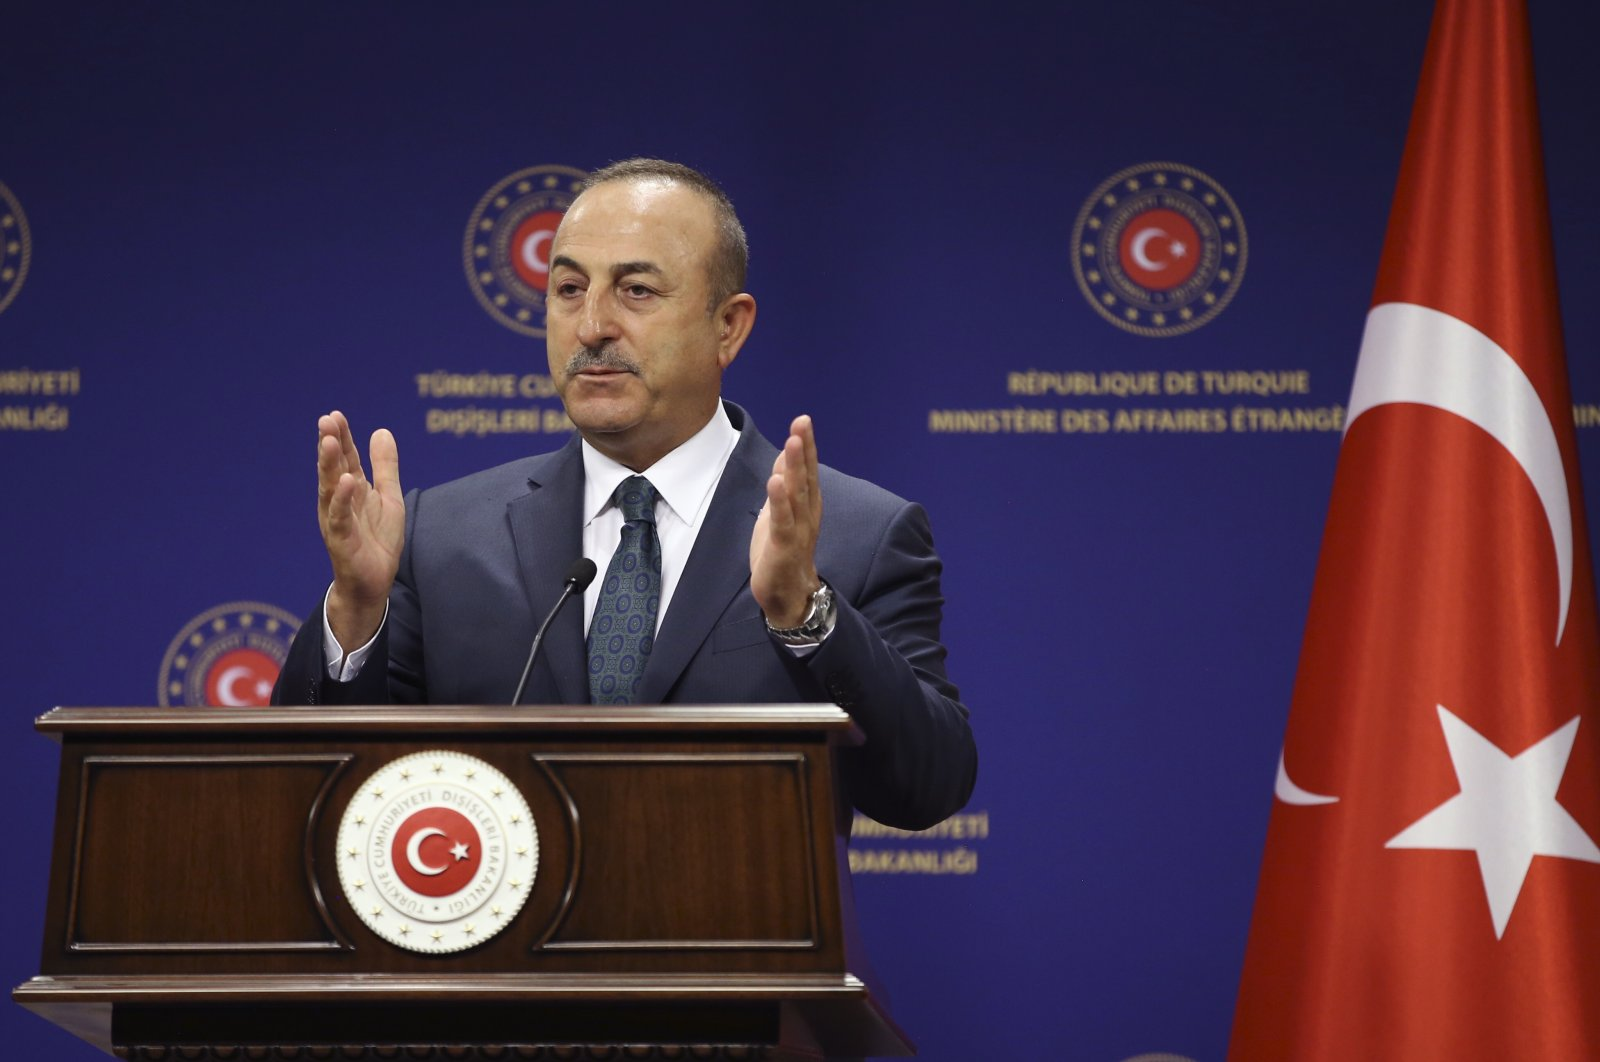 Turkey's Foreign Minister Mevlut Cavusoglu speaks during a joint press conference with Italy's Foreign Minister Luigi Di Maio, Ankara, June 19, 2020. (AP Photo)